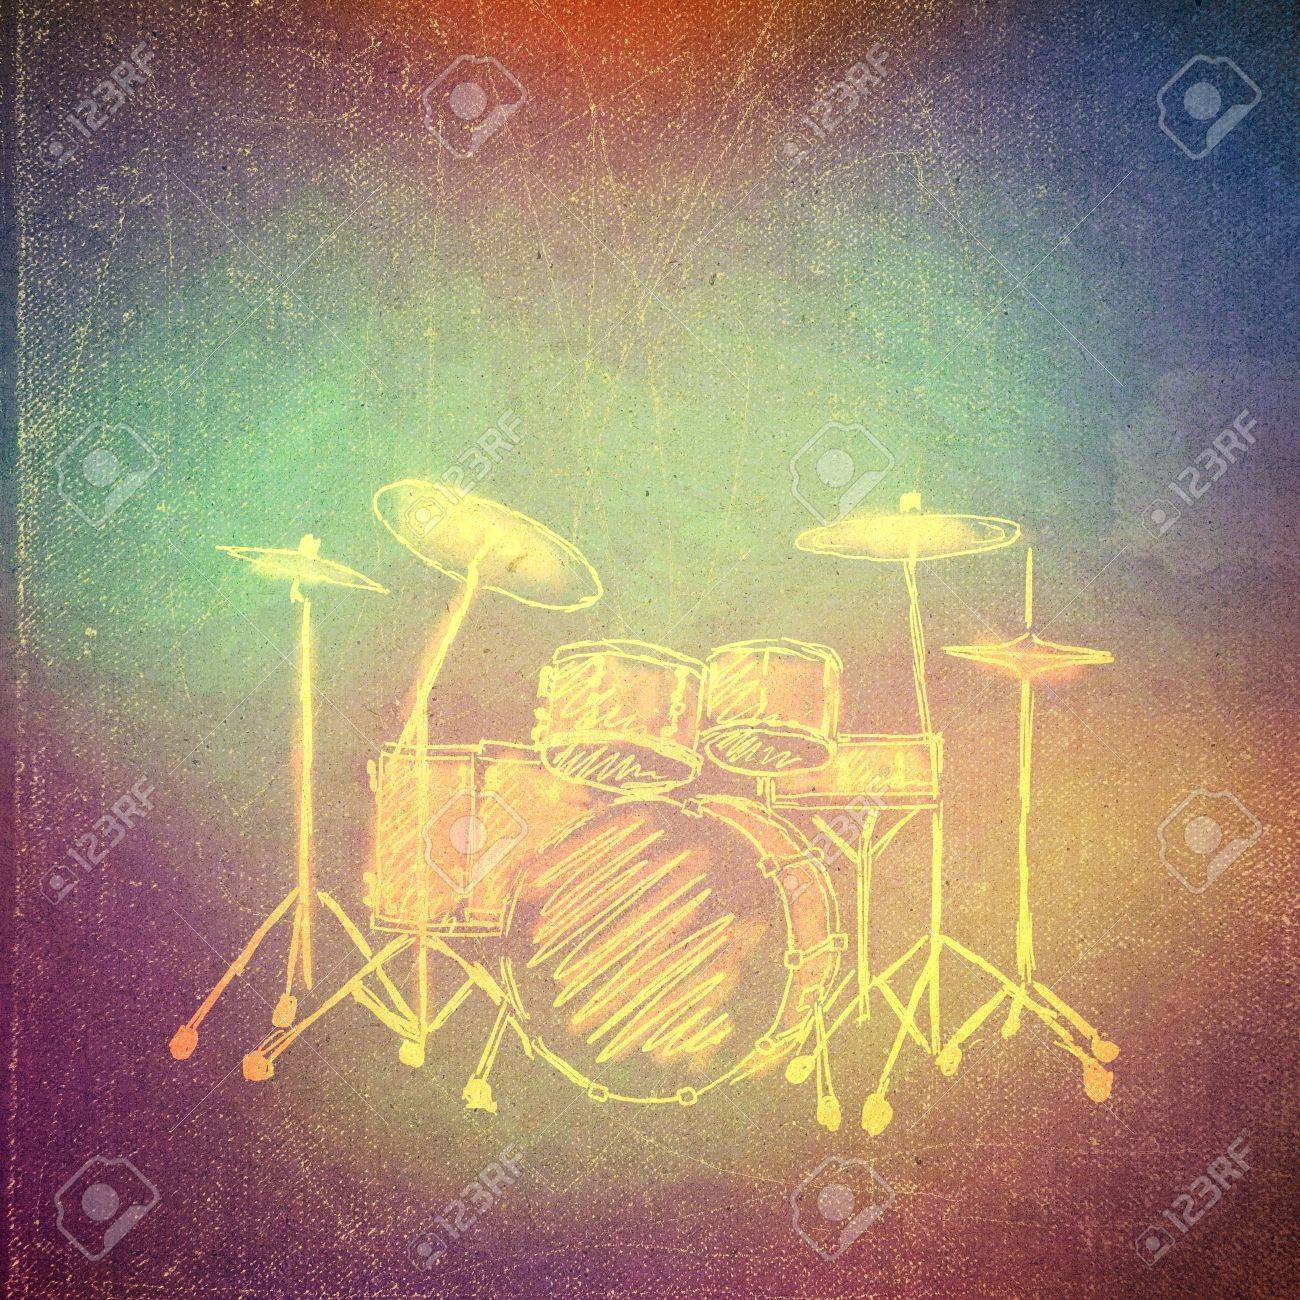 Vintage Paper Texture, Art Music Background, Drum Kit Stock Photo ...